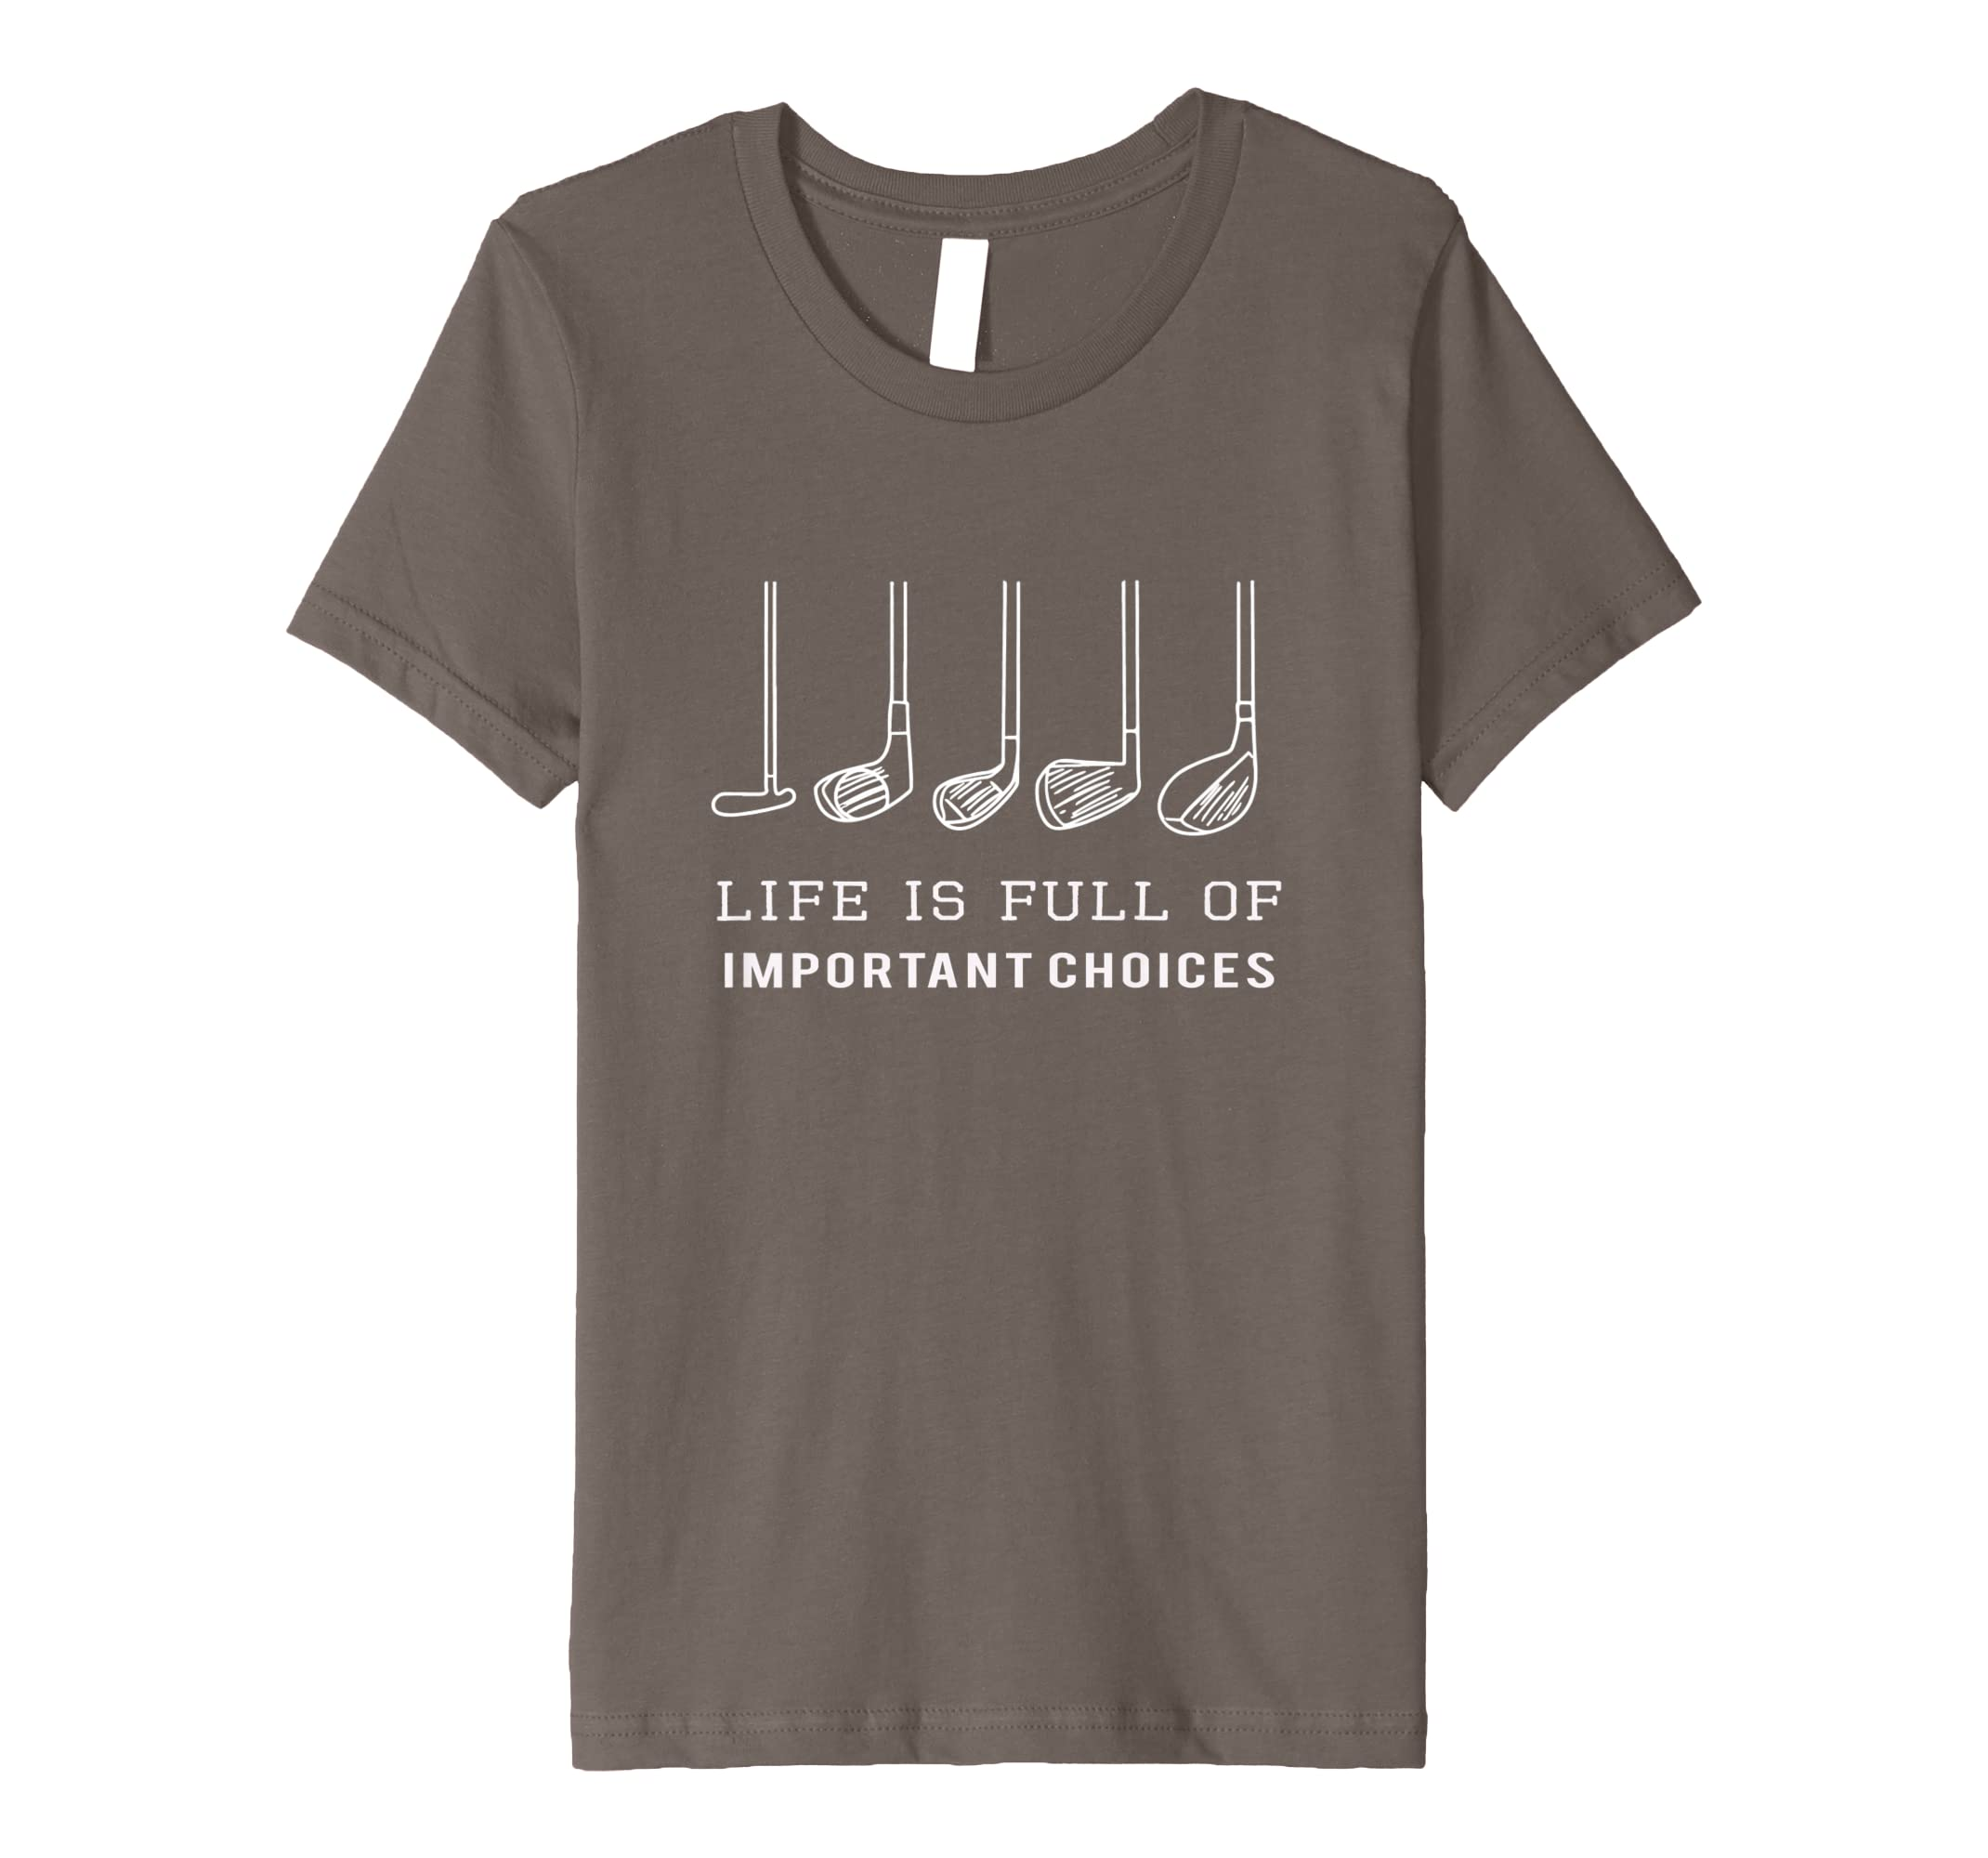 286d0f15 Amazon.com: Funny Life is Full Of Important Choices Golf Gift T-Shirt:  Clothing